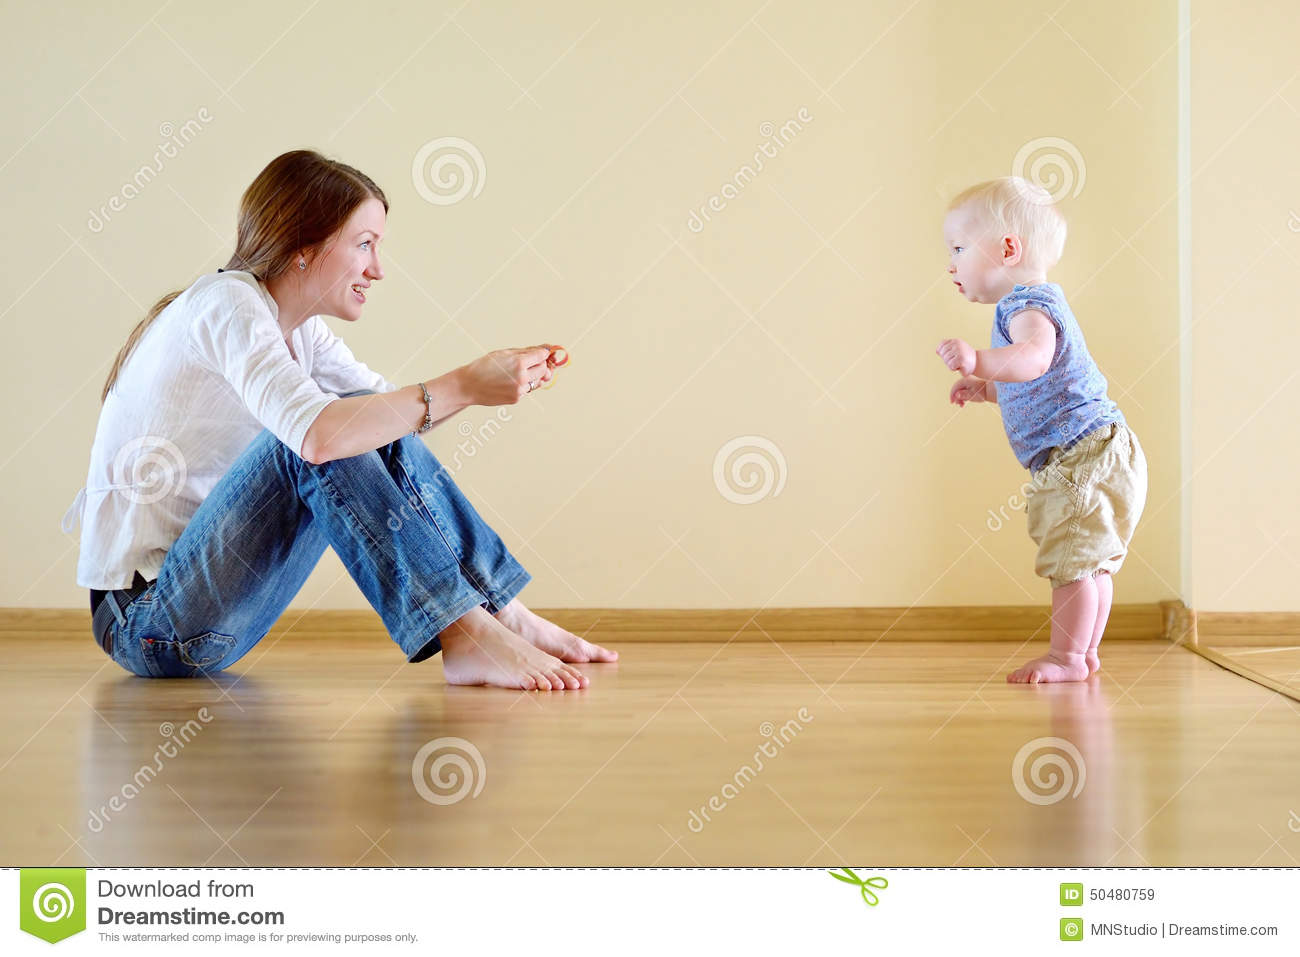 At what age does a baby learn how to walk? - Quora